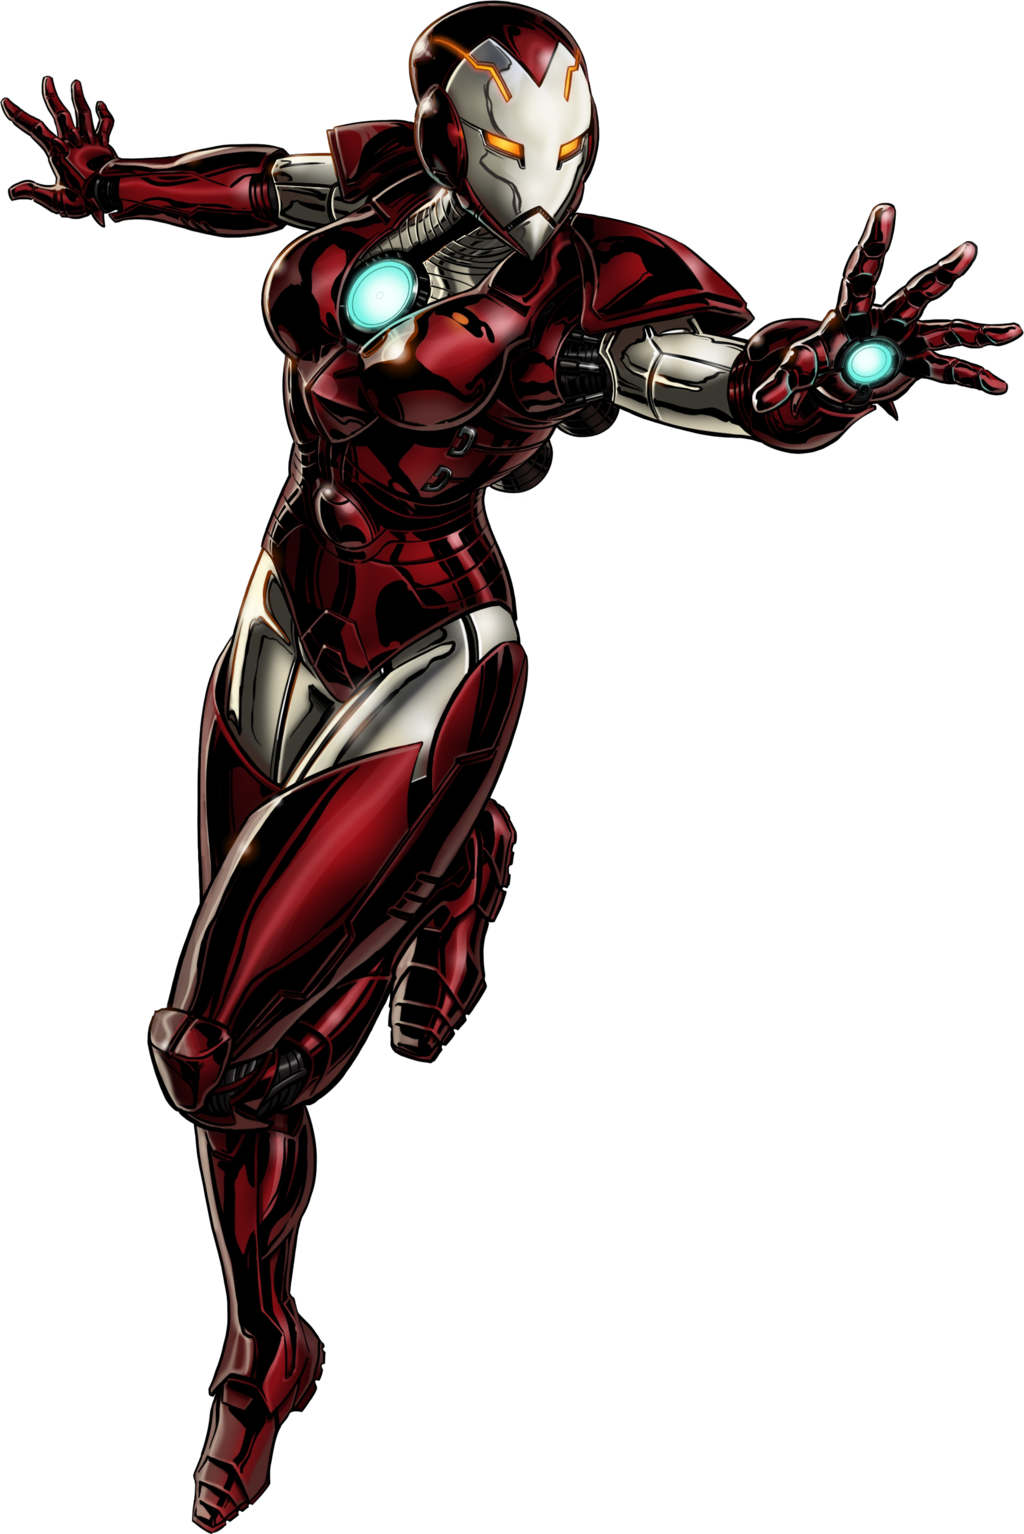 Spaceship clipart avengers. Alliance google brainstorm pinterest